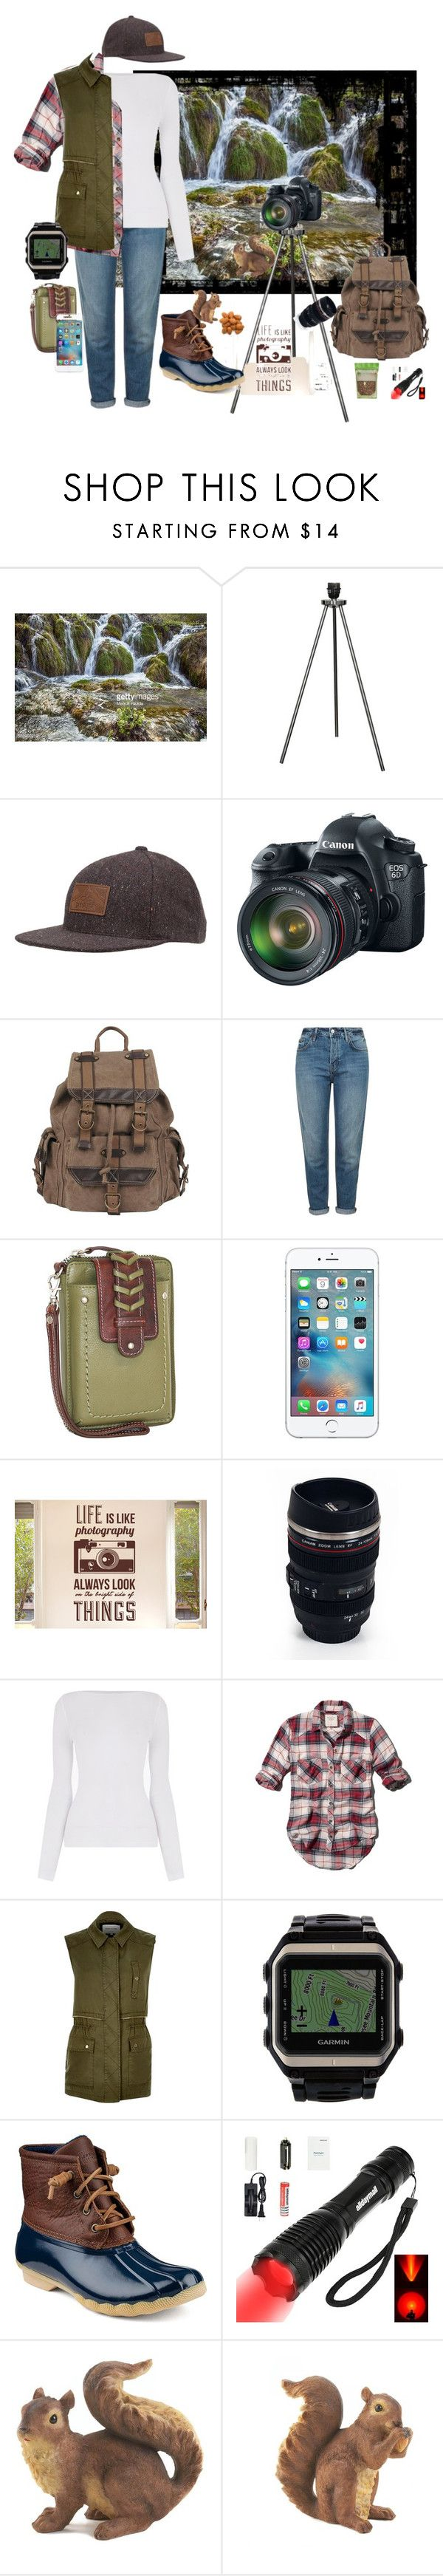 """""""Hitting the Outdoors"""" by easy-dressing ❤ liked on Polyvore featuring Innermost, prAna, Eos, Wilsons Leather, Topshop, Nino Bossi Handbags, Whetstone Cutlery, Oasis, Abercrombie & Fitch and River Island"""